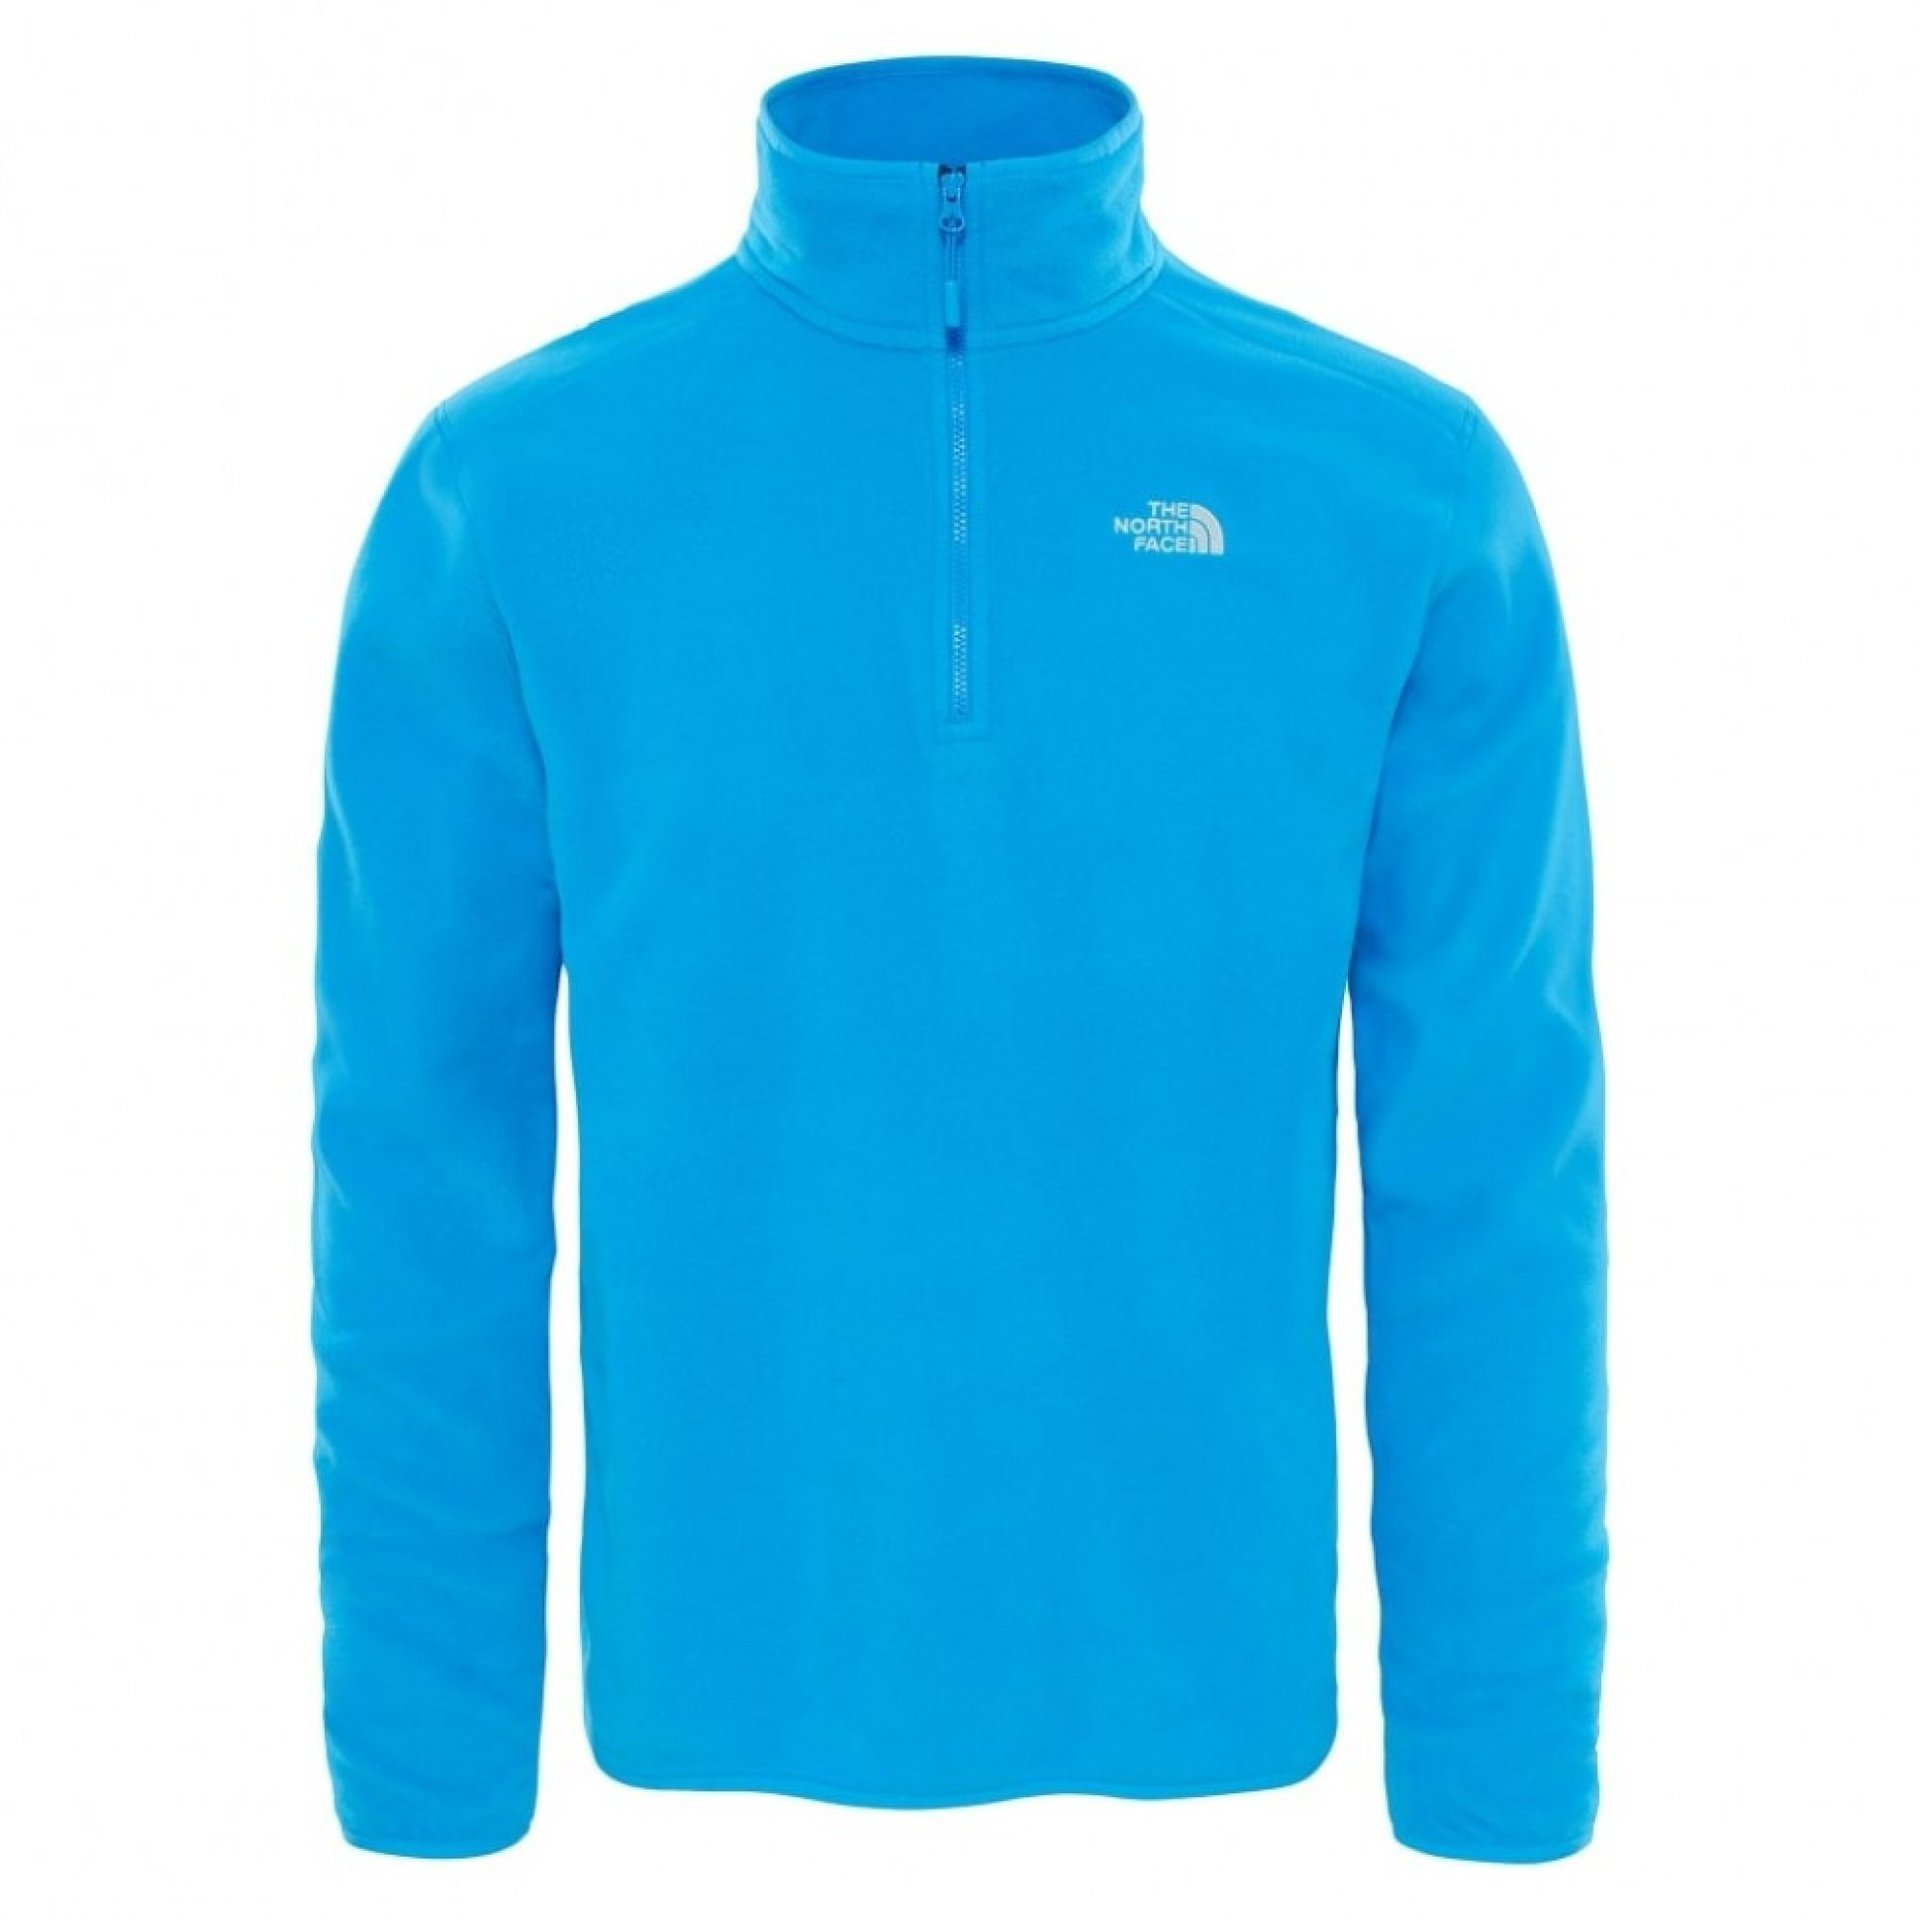 POLAR THE NORTH FACE 100 GLACIER HYPER BLUE